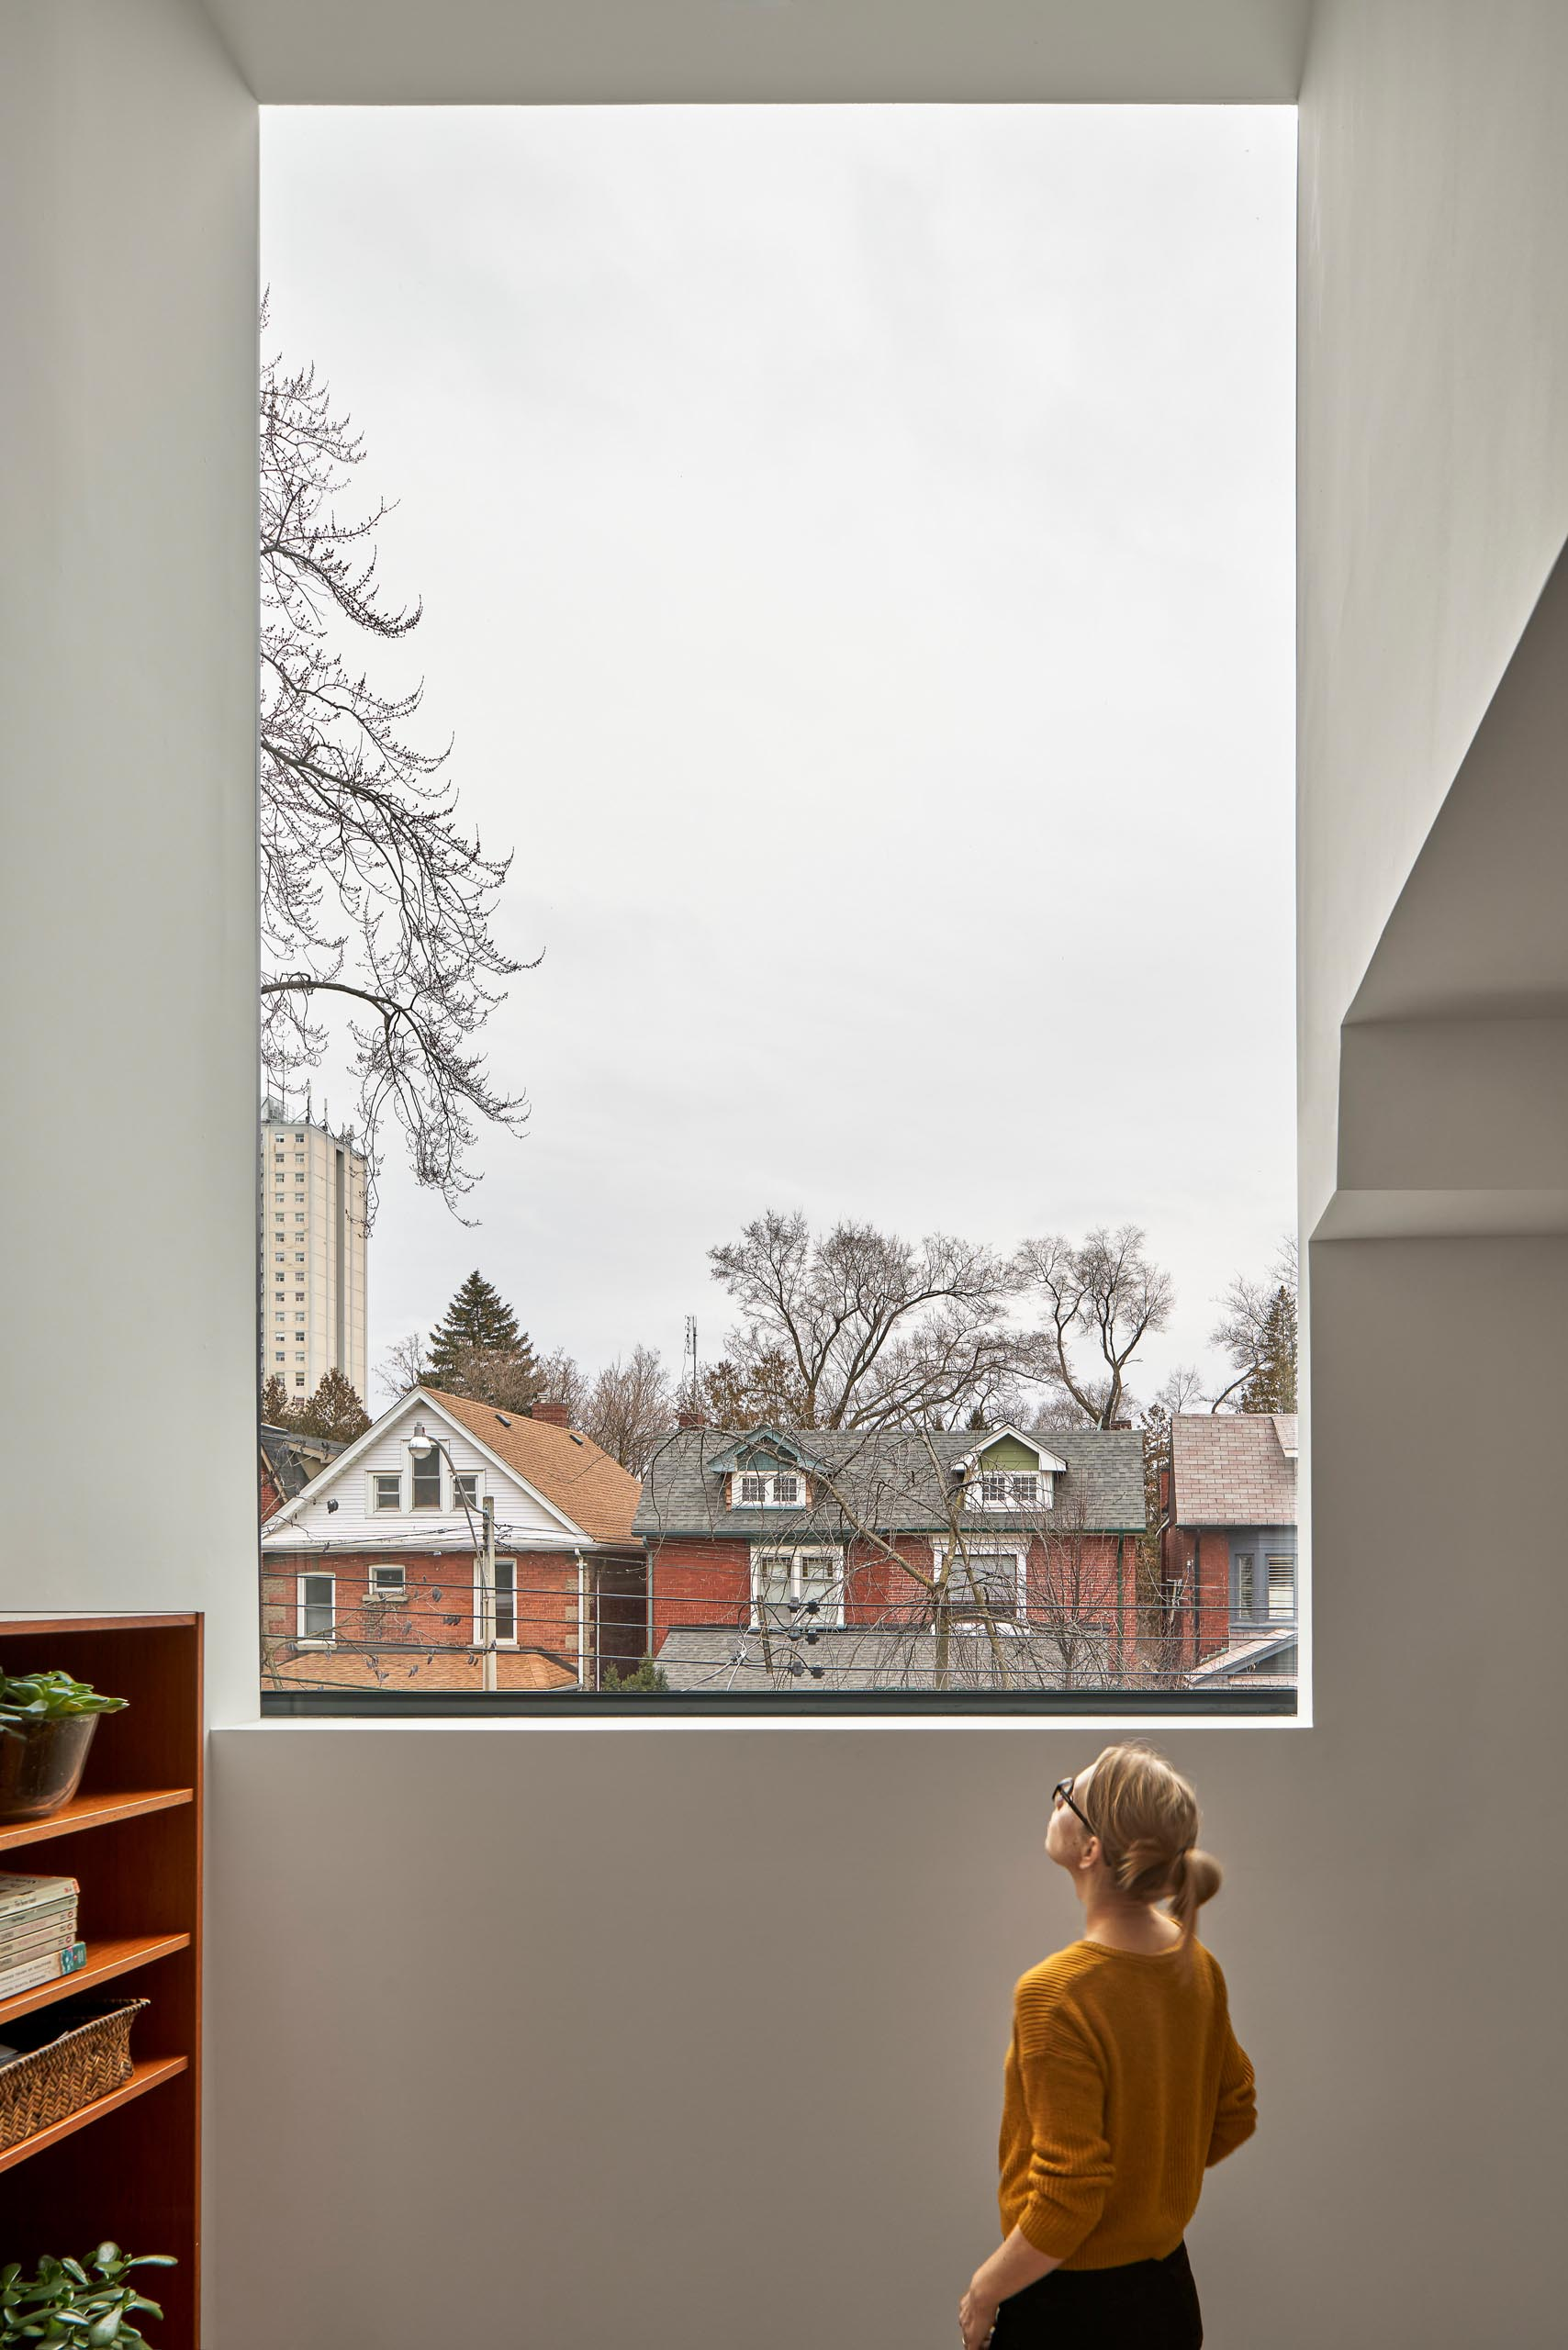 On the upper floor of this modern home, there's a large window that frames the neighborhood.